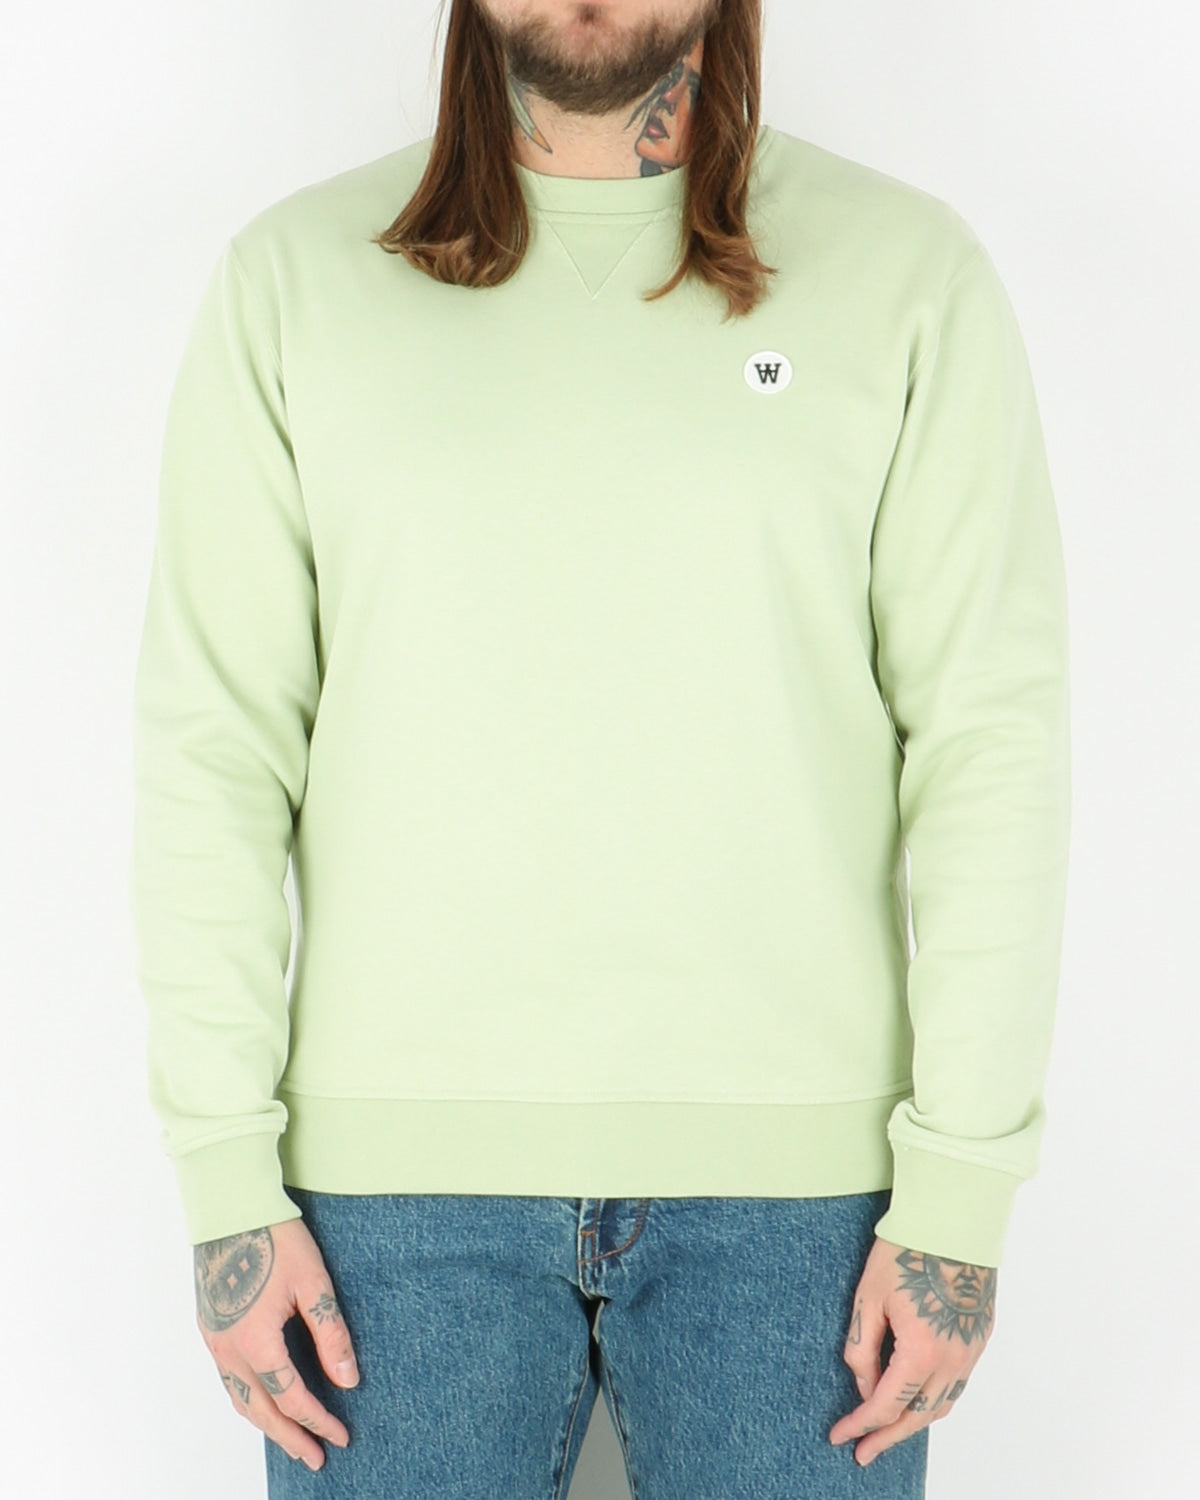 wood wood_tye sweatshirt_mint_1_3